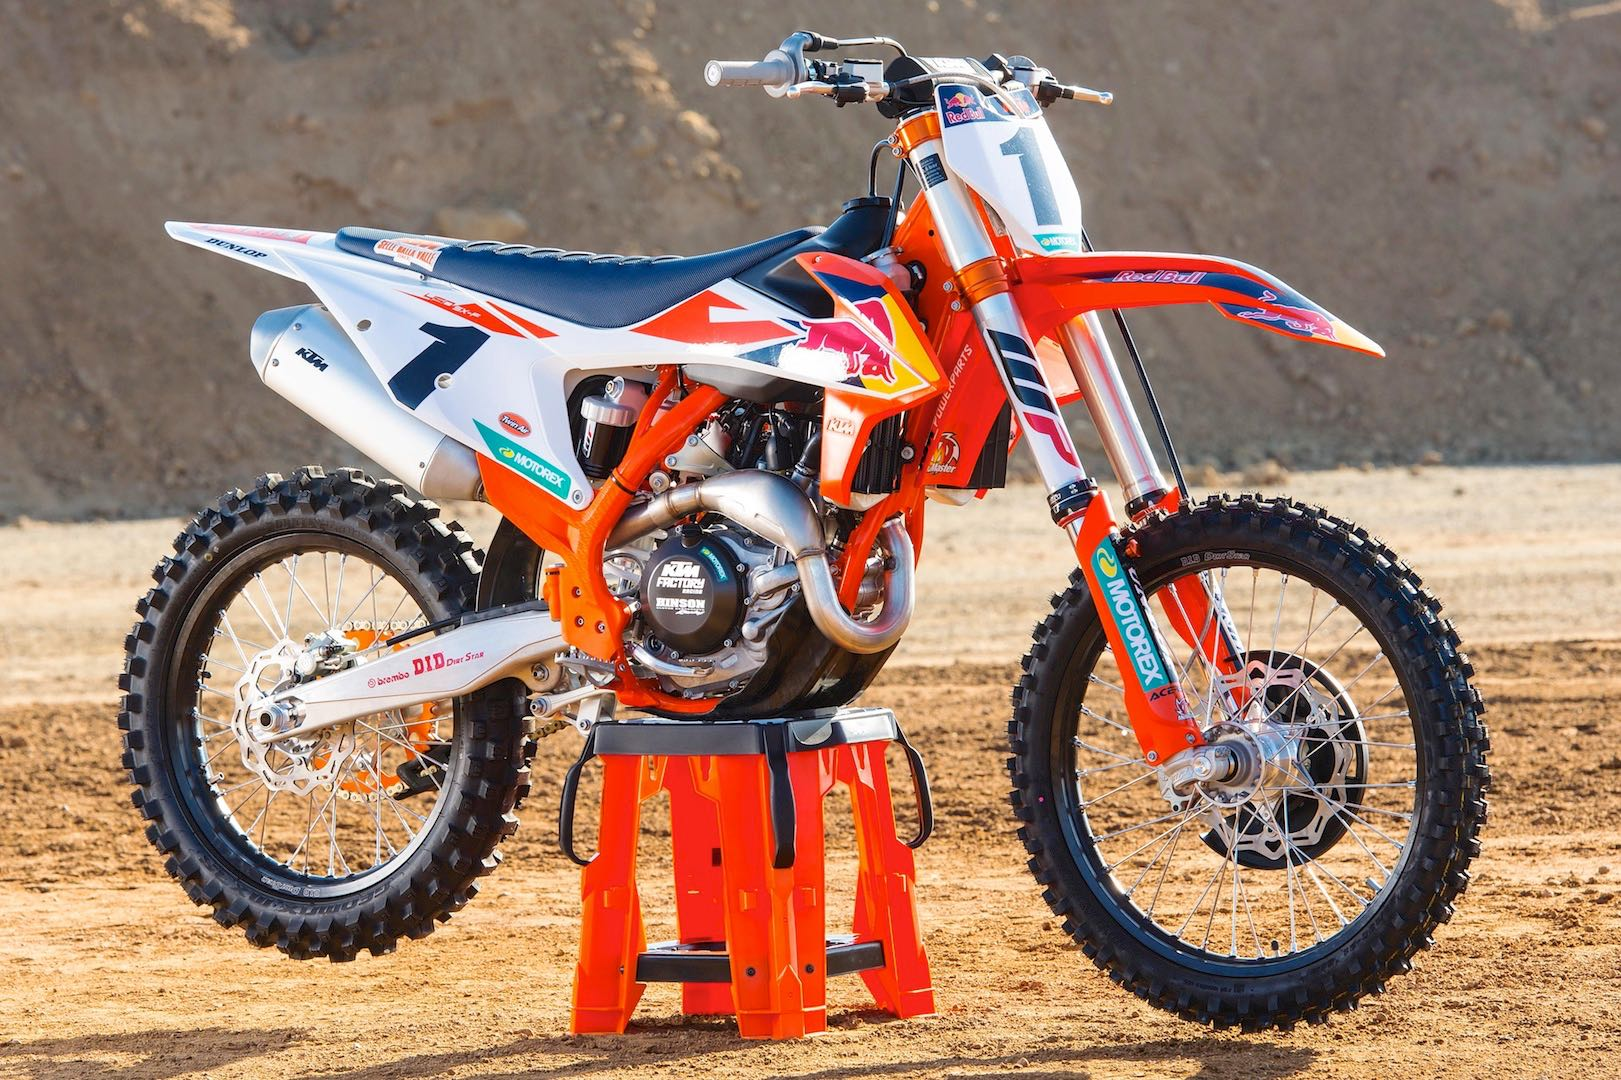 2018 KTM 450 SX-F Factory Edition horsepower